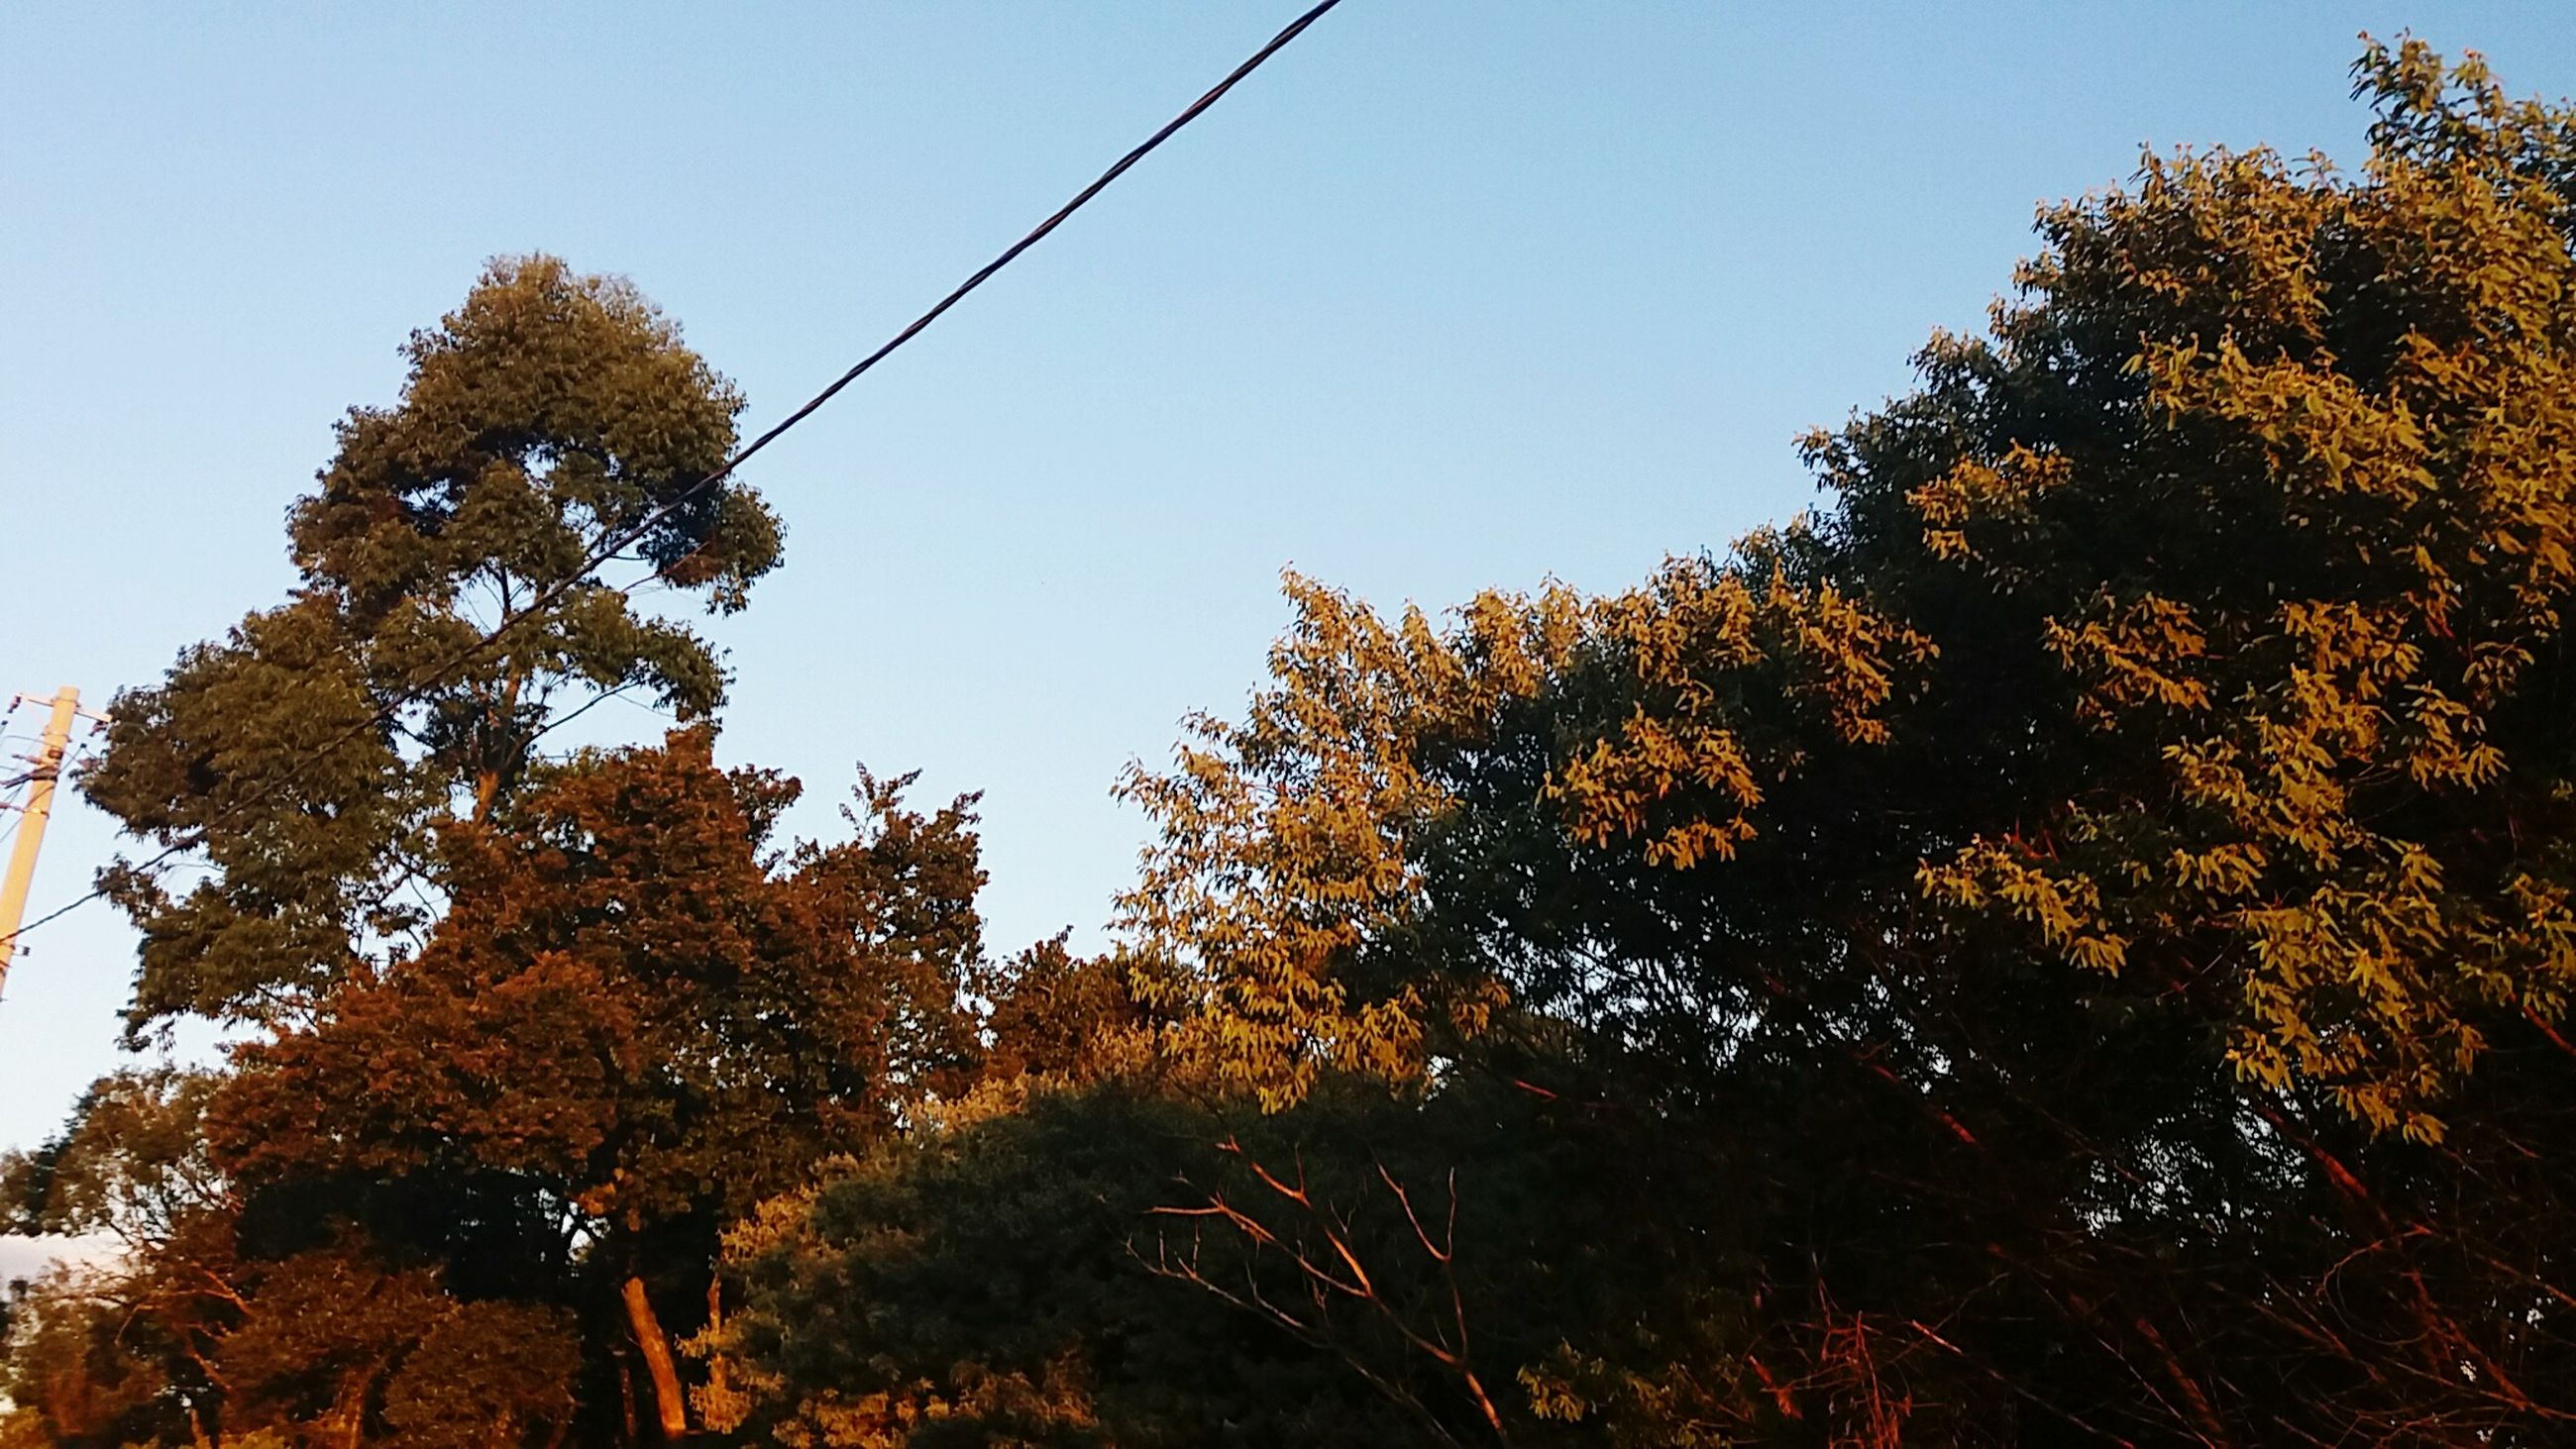 tree, low angle view, clear sky, growth, nature, branch, beauty in nature, tranquility, sky, outdoors, silhouette, no people, autumn, day, sunlight, blue, scenics, tranquil scene, change, high section